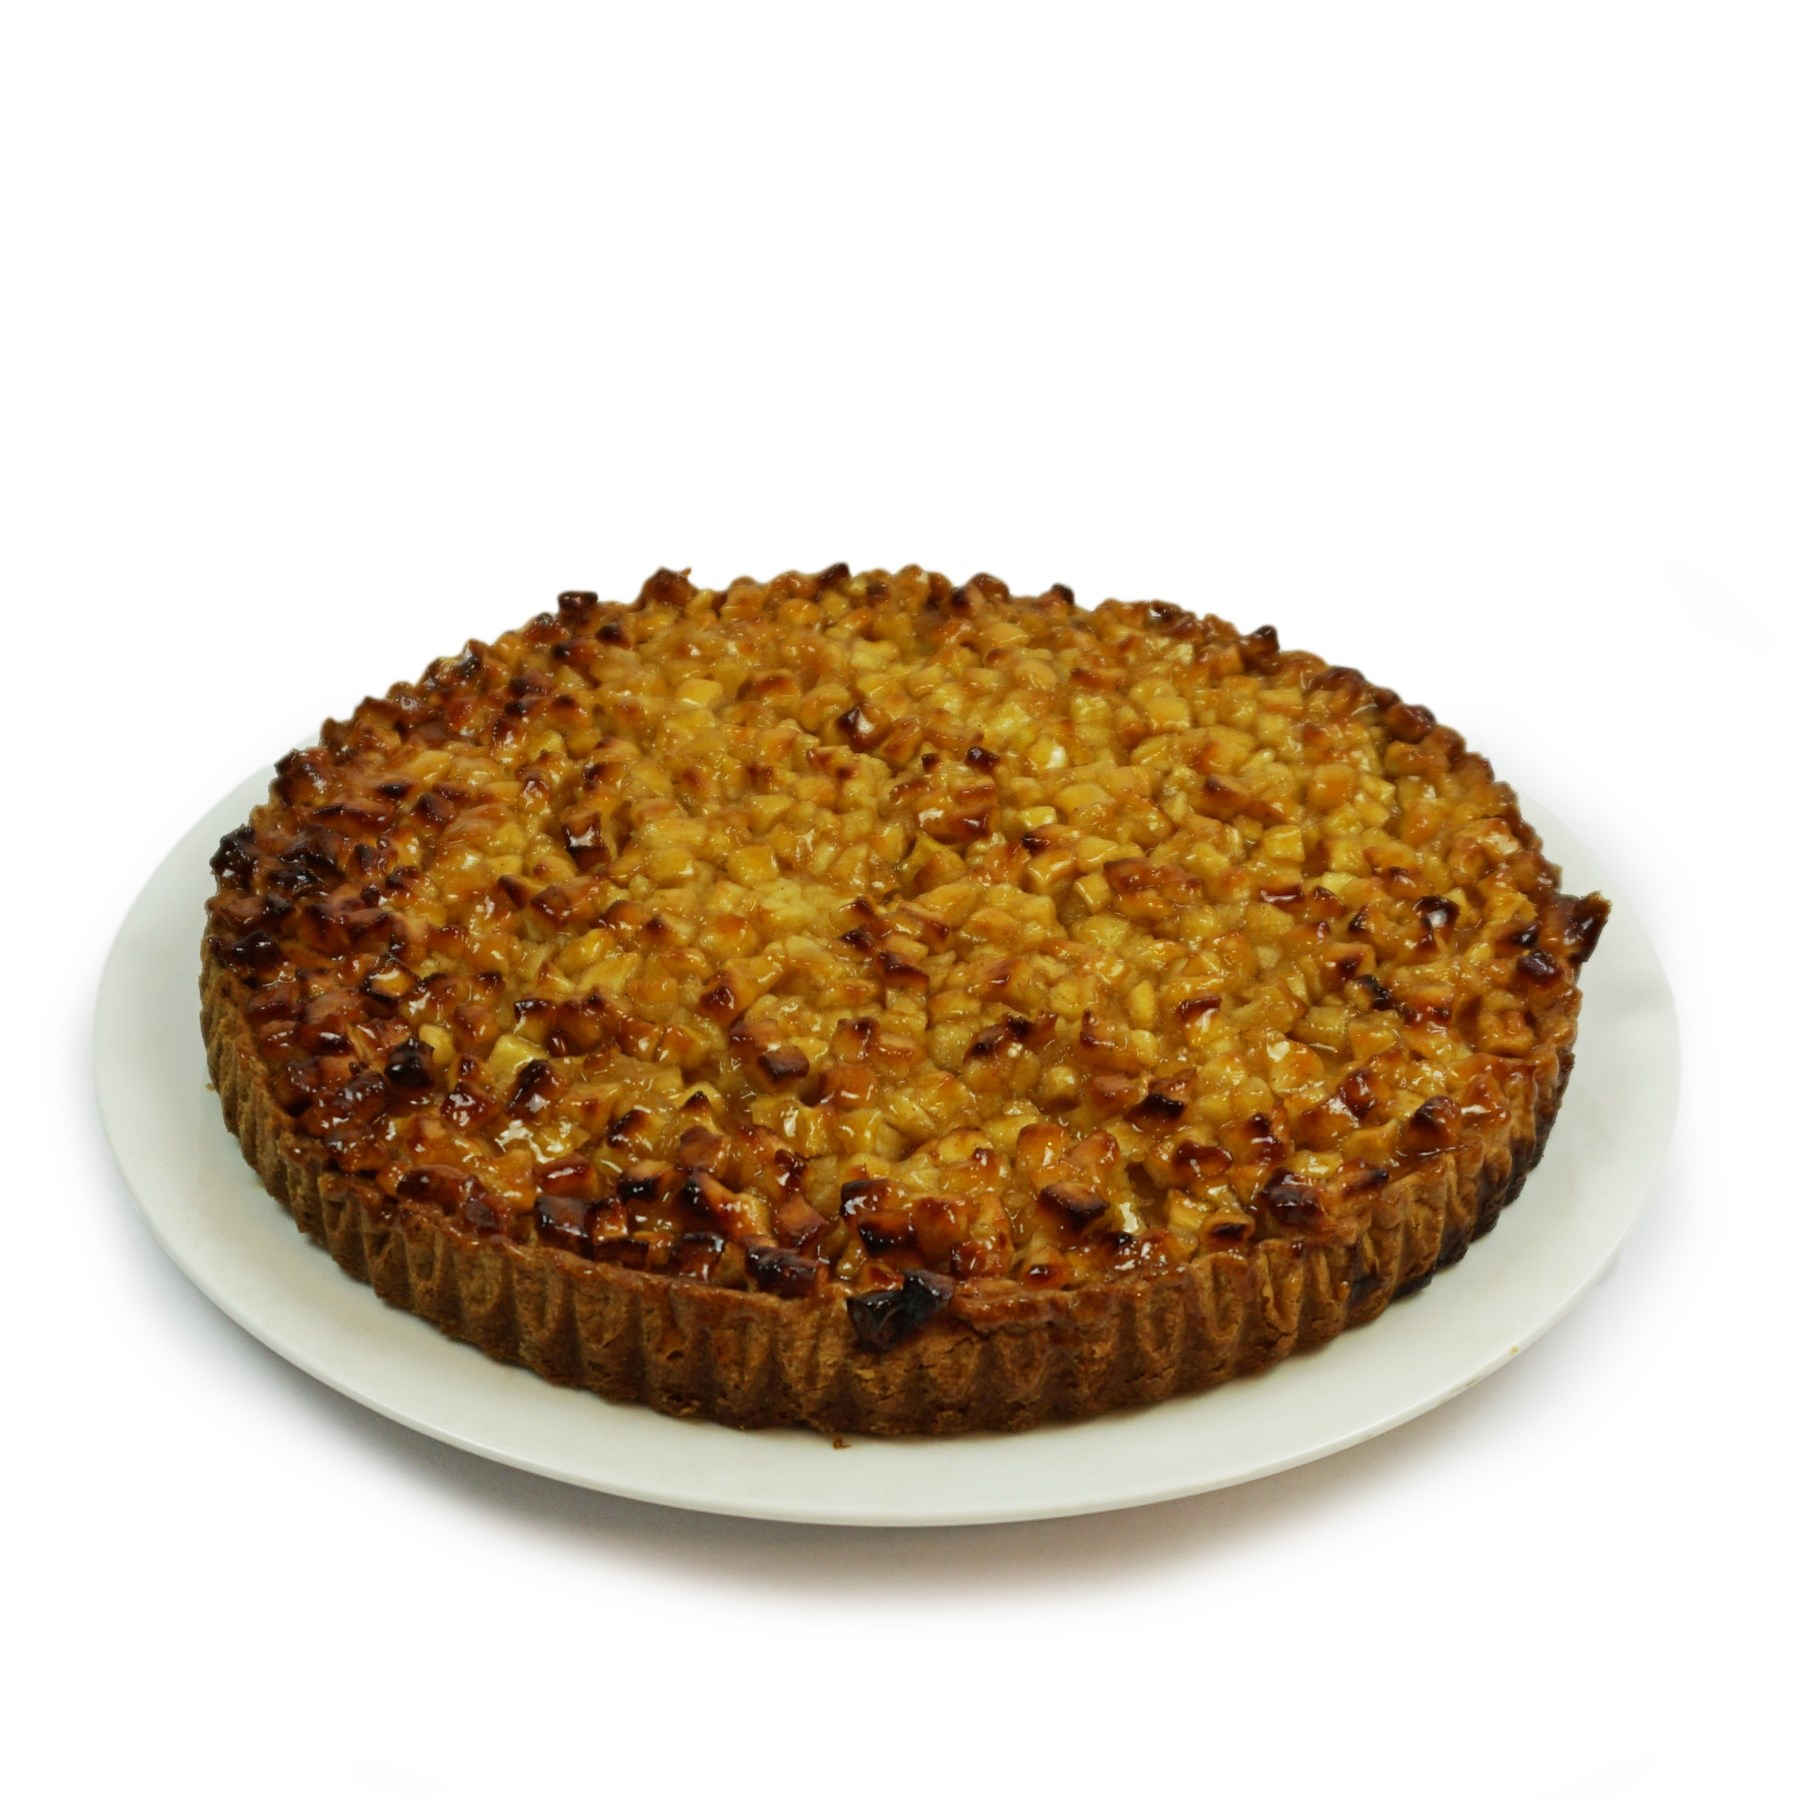 Apple and Cinnamon Tart dia. 26 cm